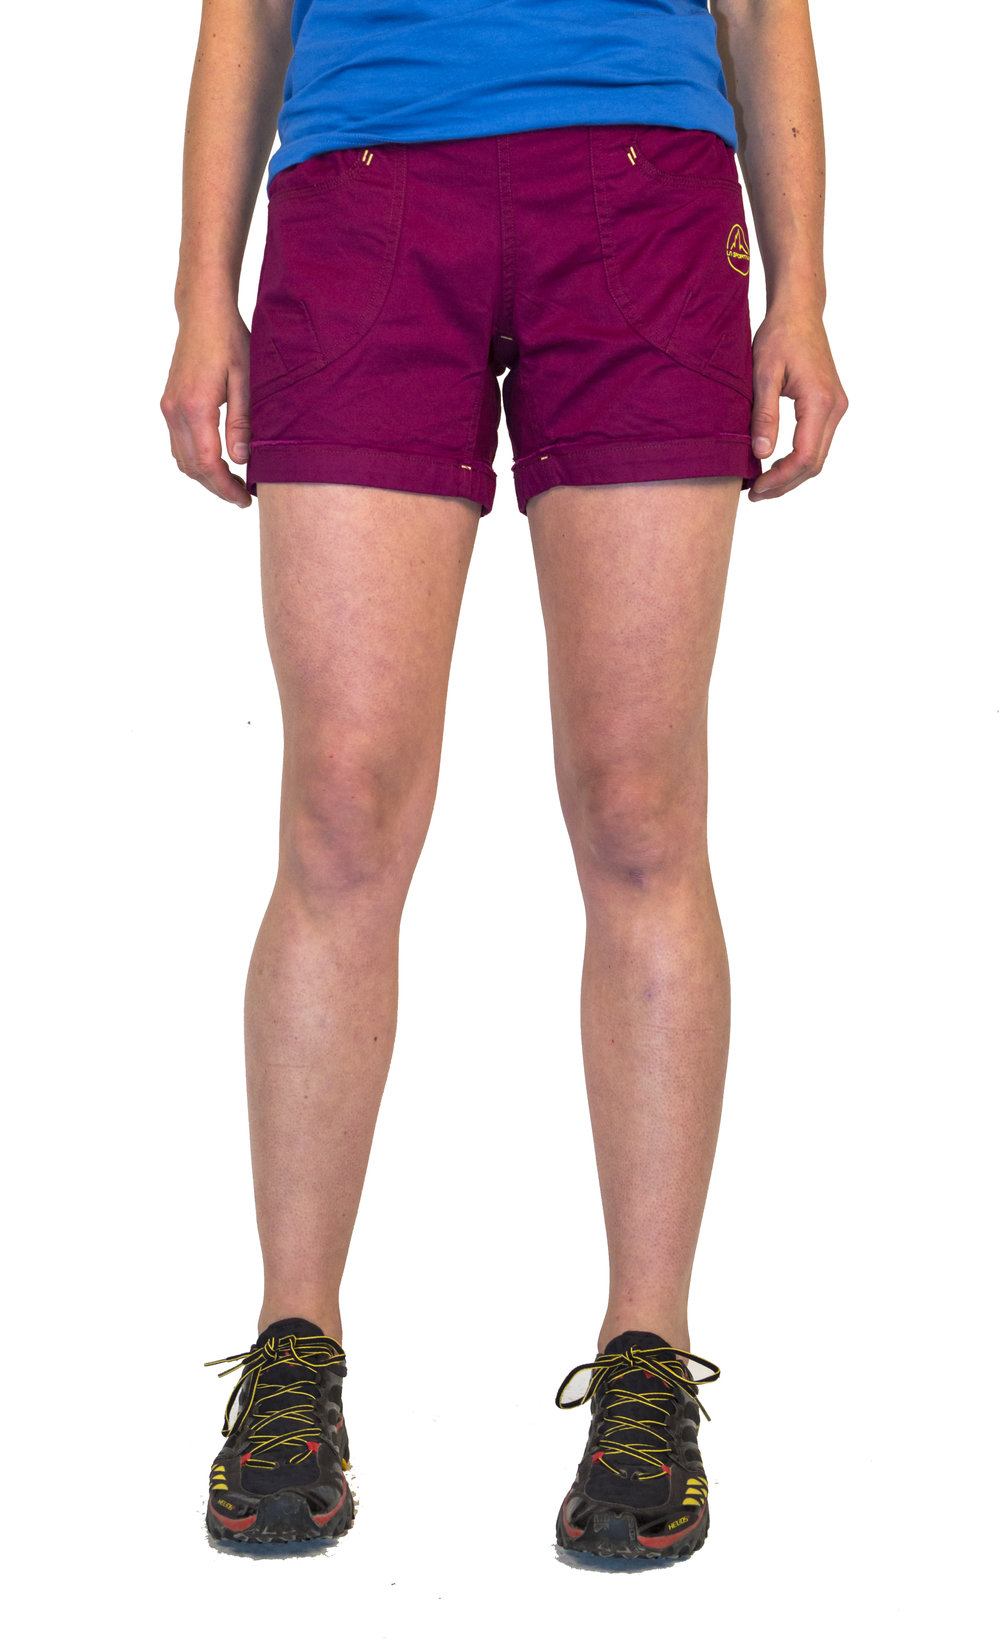 I81_EscapeShort_Plum_1.jpg